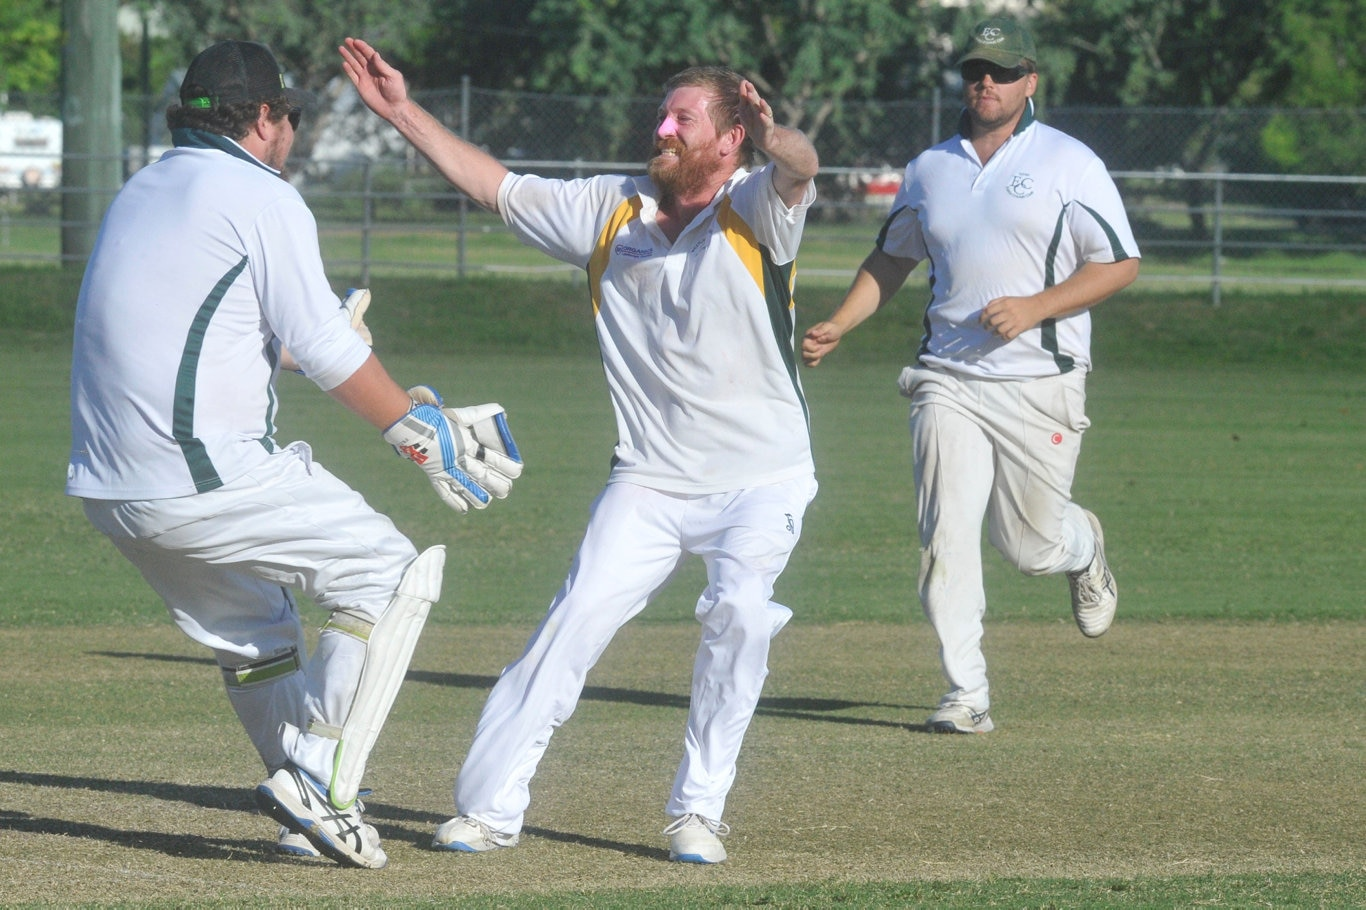 Nathan Blanch celebrates a wicket during the 2019/20 Clarence River Cricket Association GDSC Premier League minor semi-final match at McKittrick Park on Saturday, 15th March, 2020.